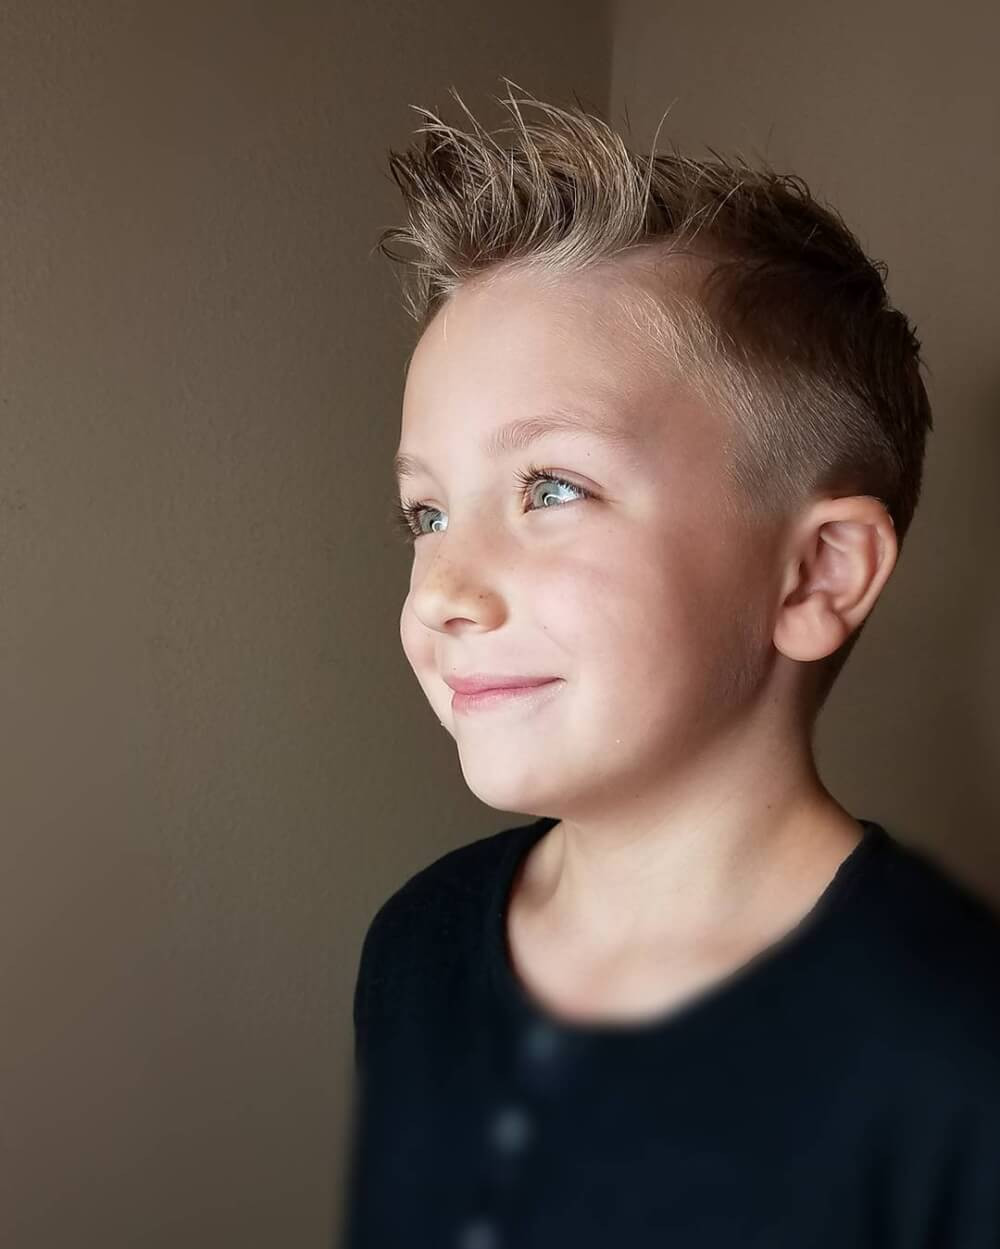 Best ideas about Hairstyles Boys . Save or Pin 31 Cutest Boys Haircuts for 2018 Fades Pomps Lines & More Now.